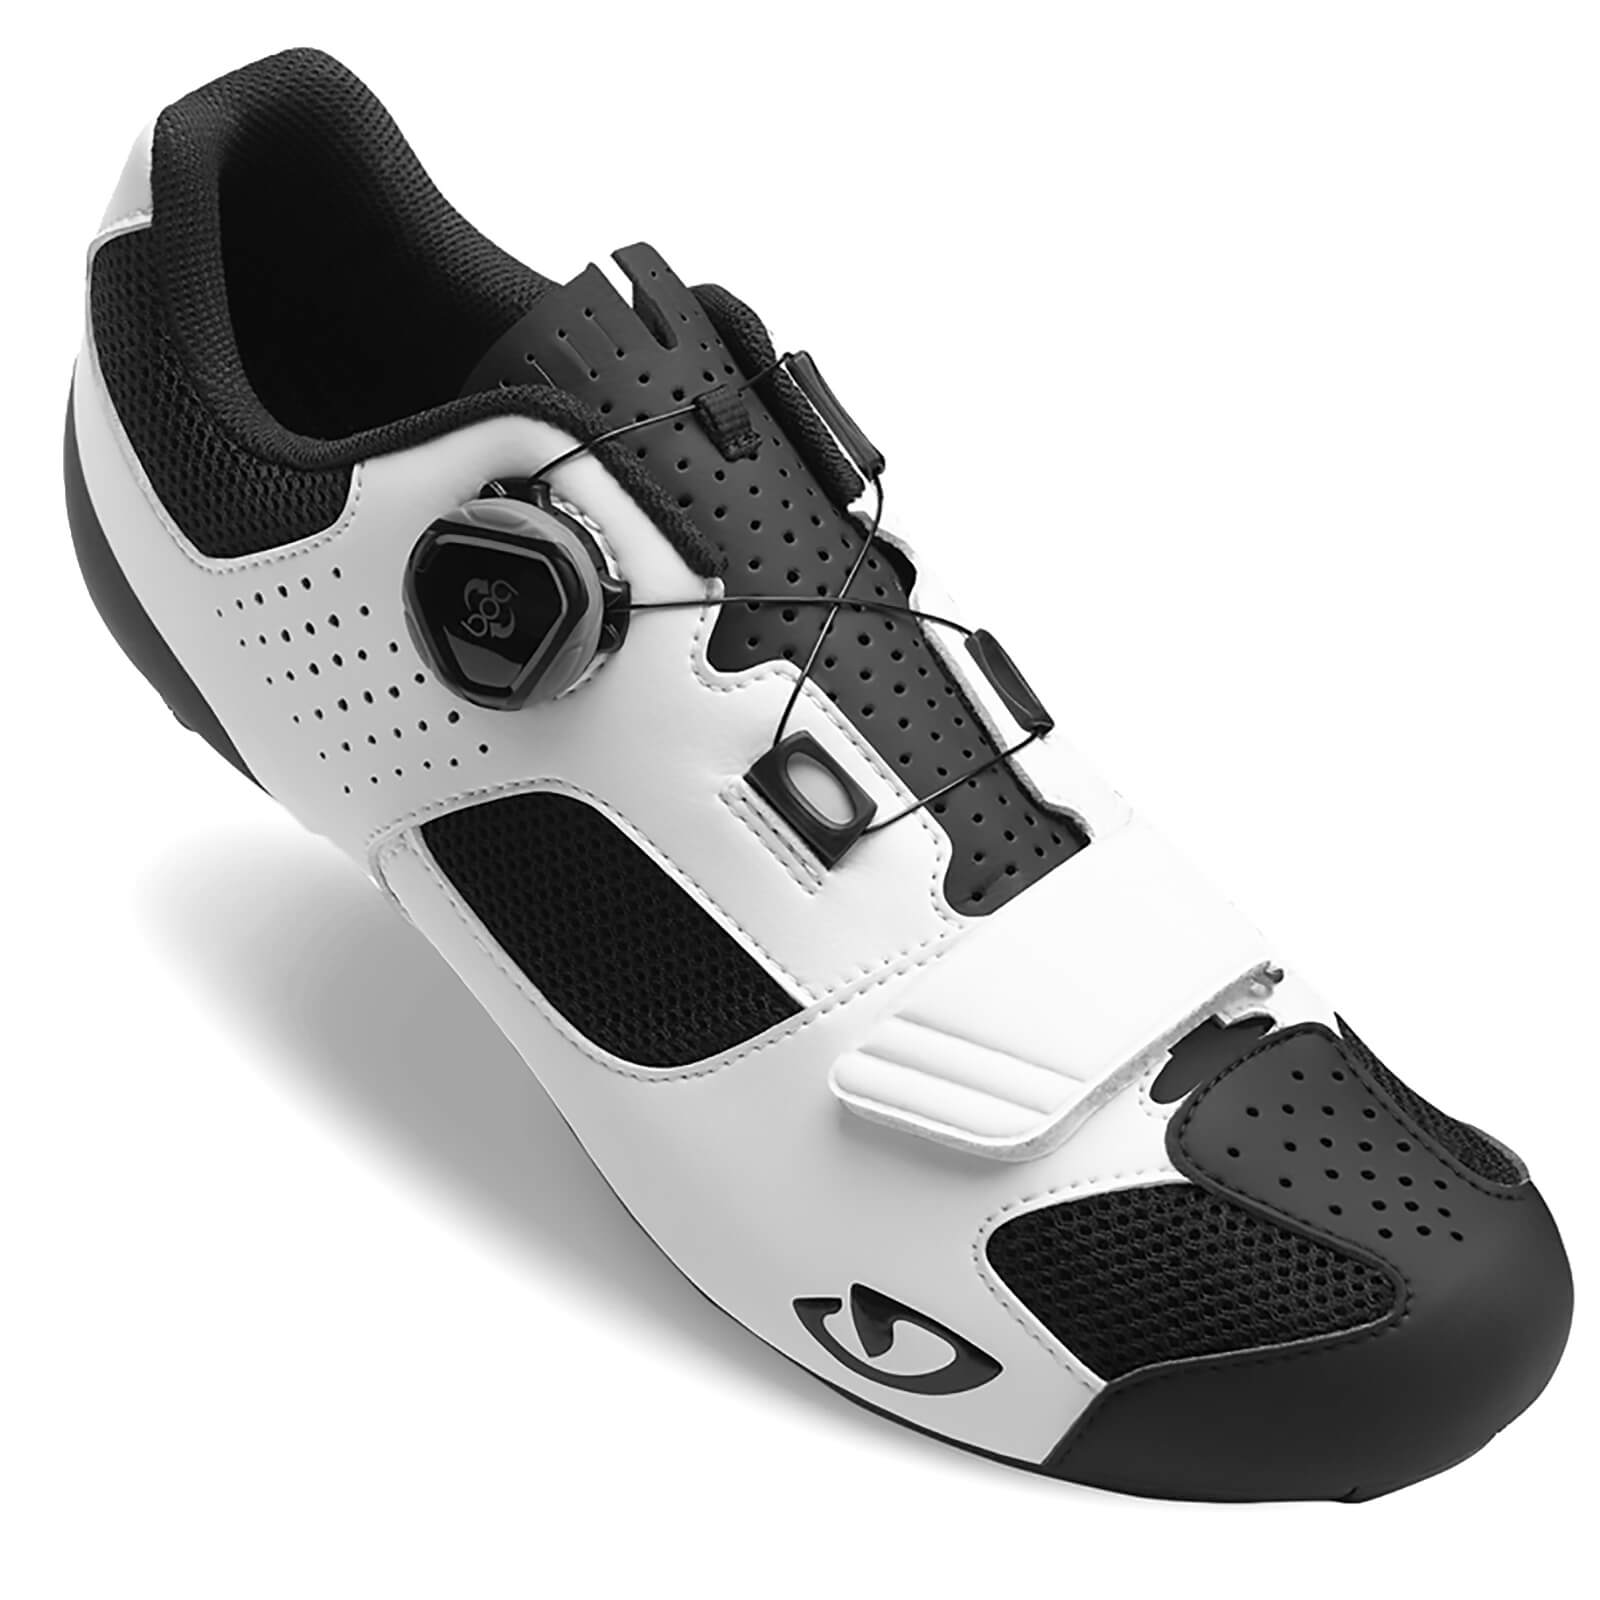 Giro Trans Road Shoes White Black